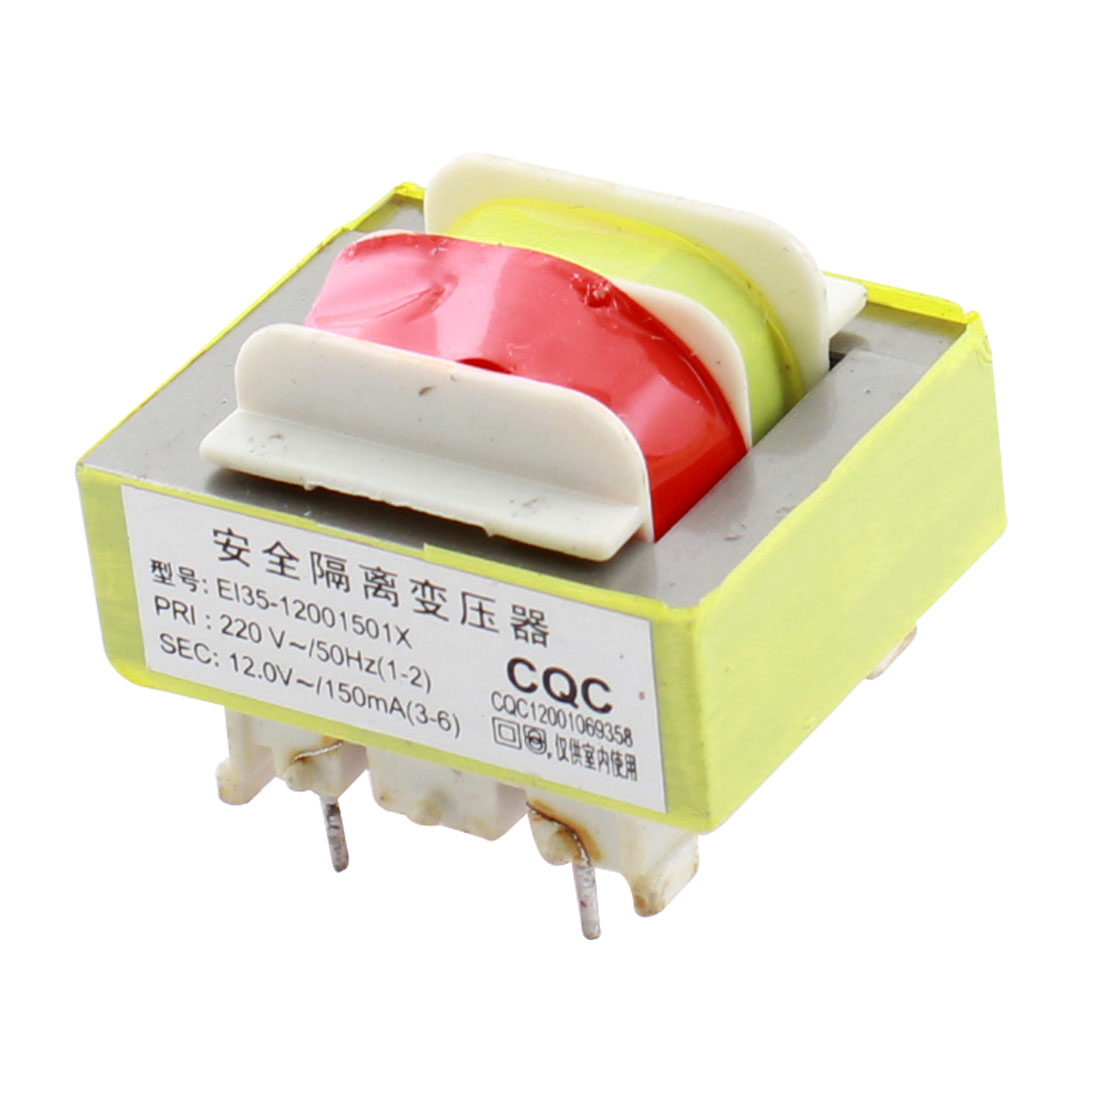 AC 220V 12V 150mA 6-Pin Ferrite Core Electric Rice Cooker Power Transformer EI-35